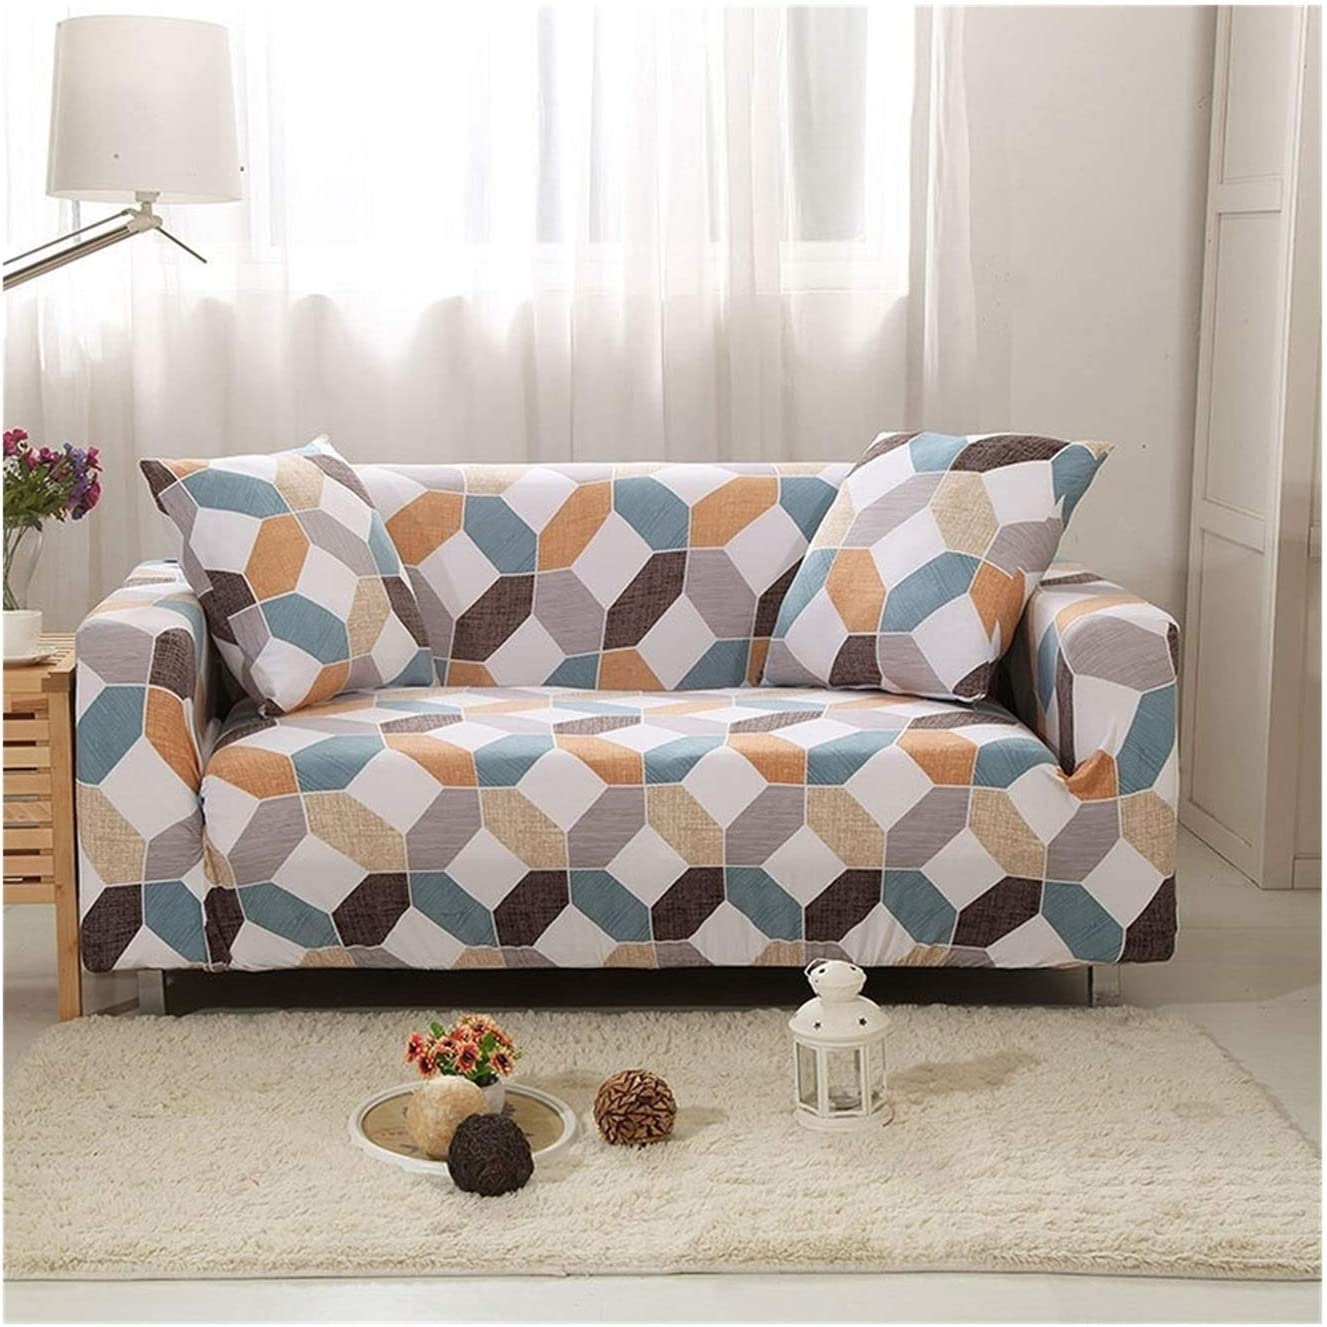 JPMSB List price Stretch Sofa Cover Elastic Covers for Cheap super special price S Living Room